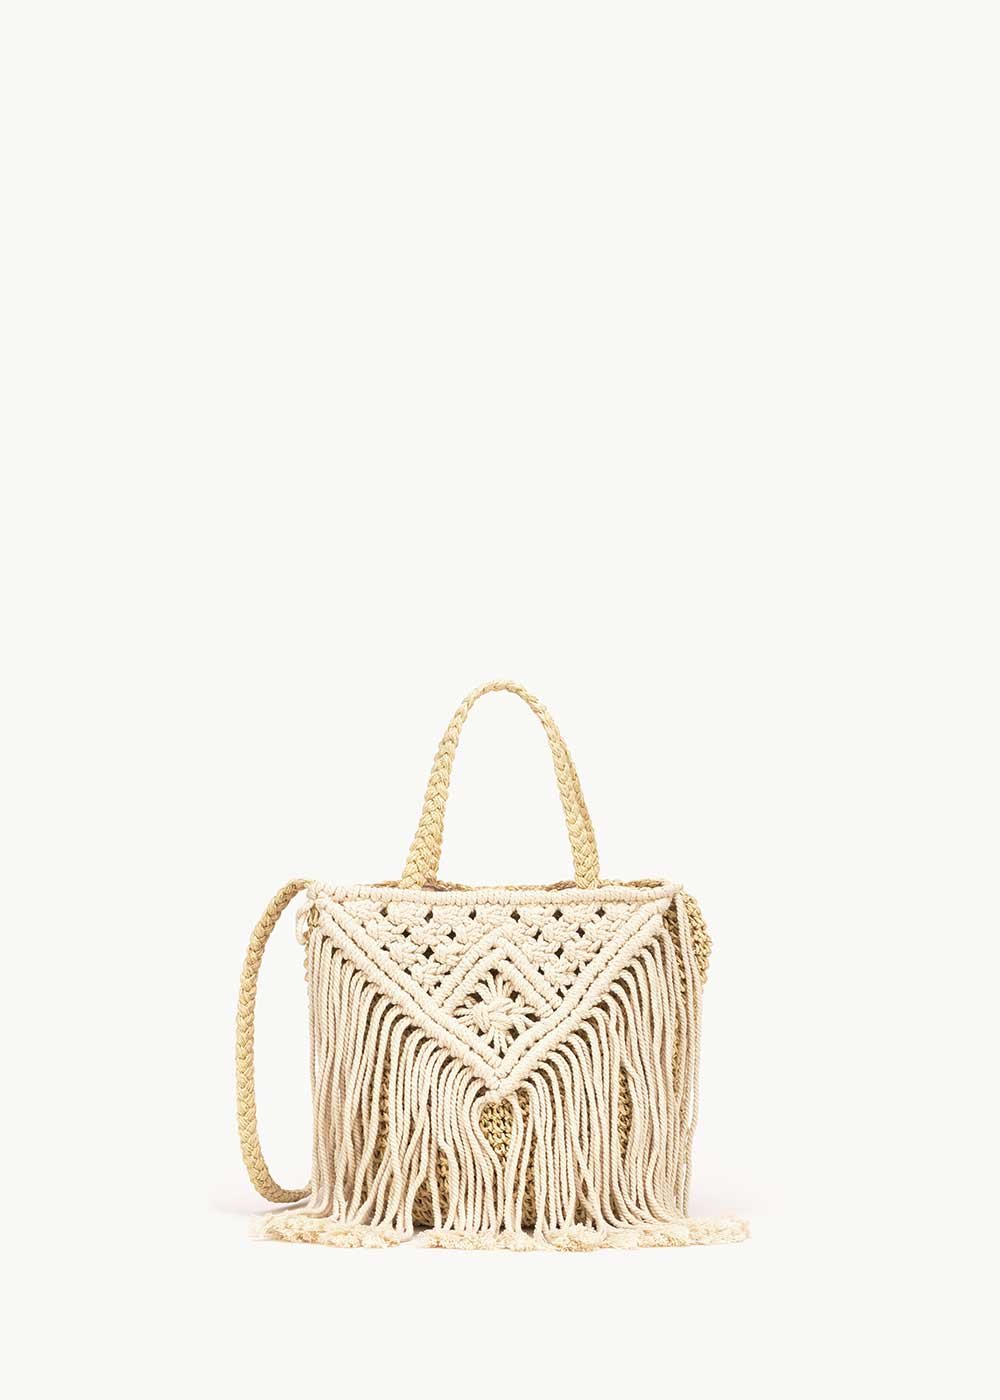 Barkly shopping bag with fringes - Light Beige - Woman